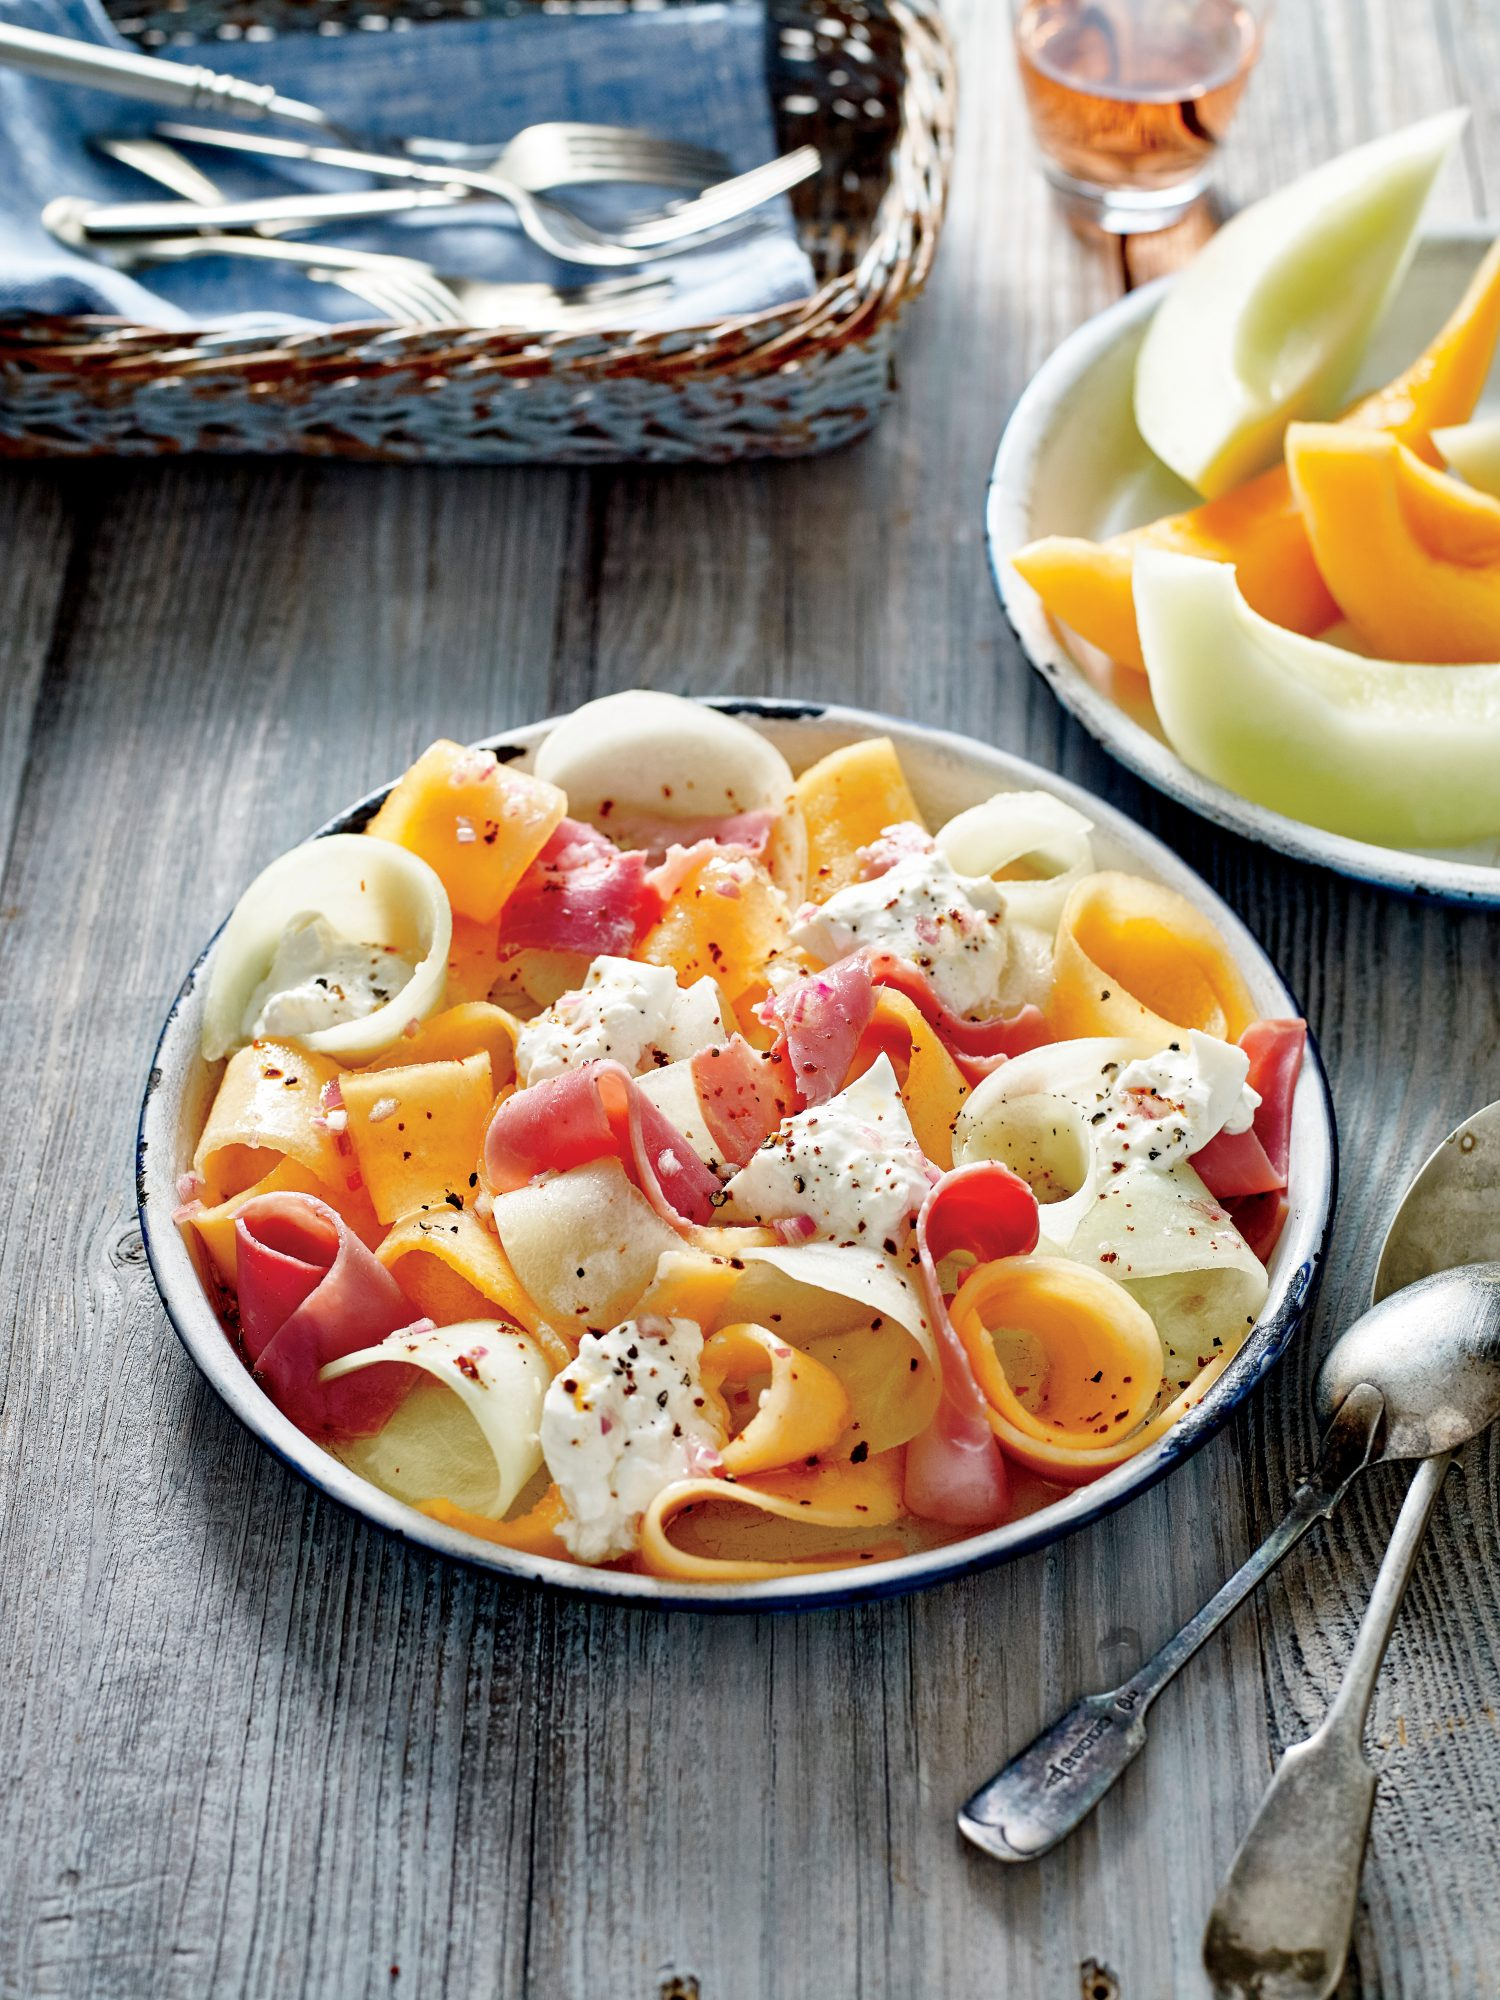 Summer Melon and Ham Salad with Burrata and Chile